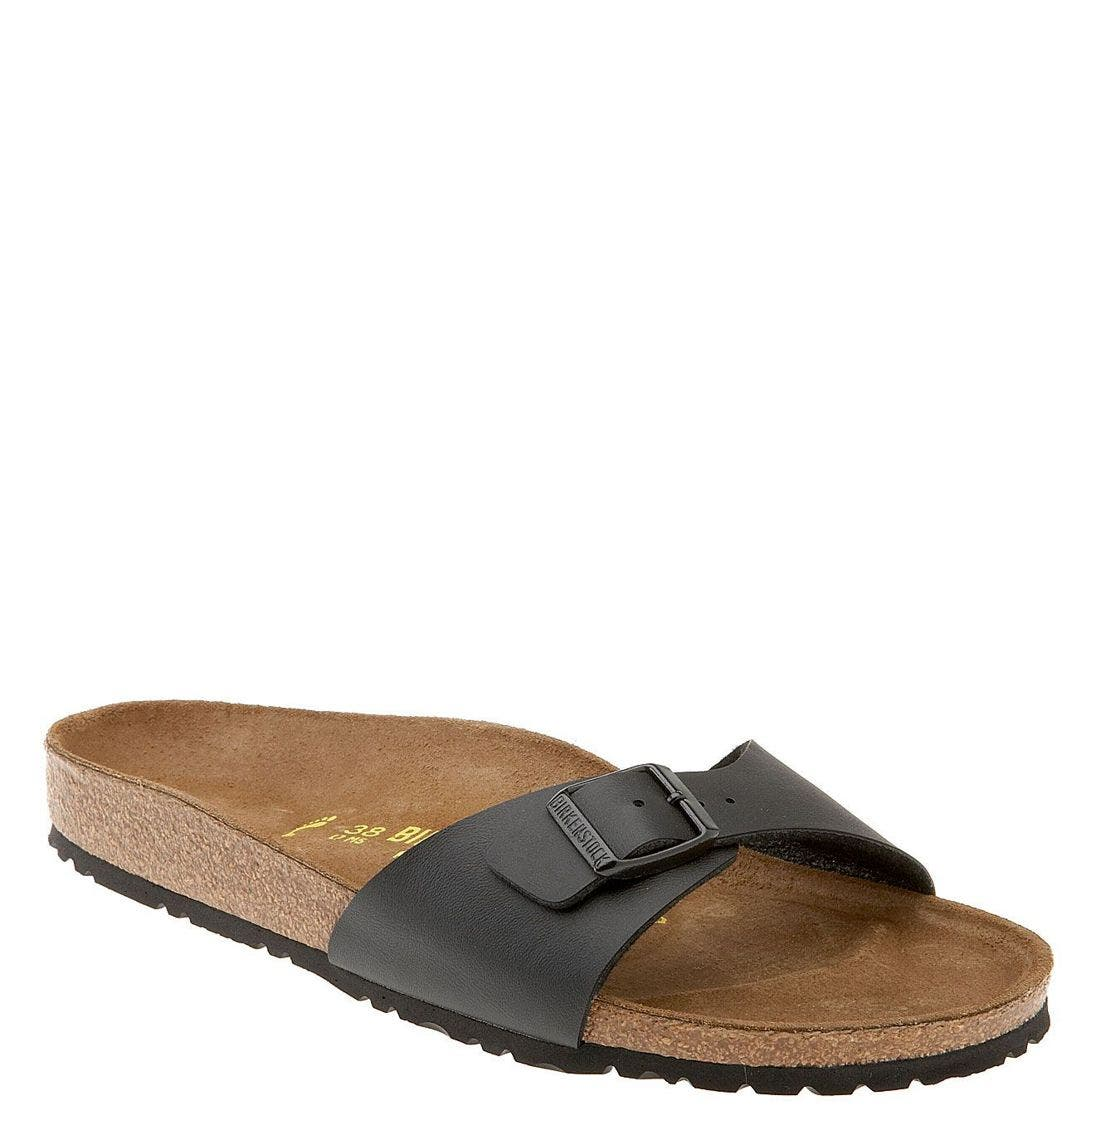 Alternate Image 1 Selected - Birkenstock 'Madrid' Birko-Flor™ Sandal (Women)